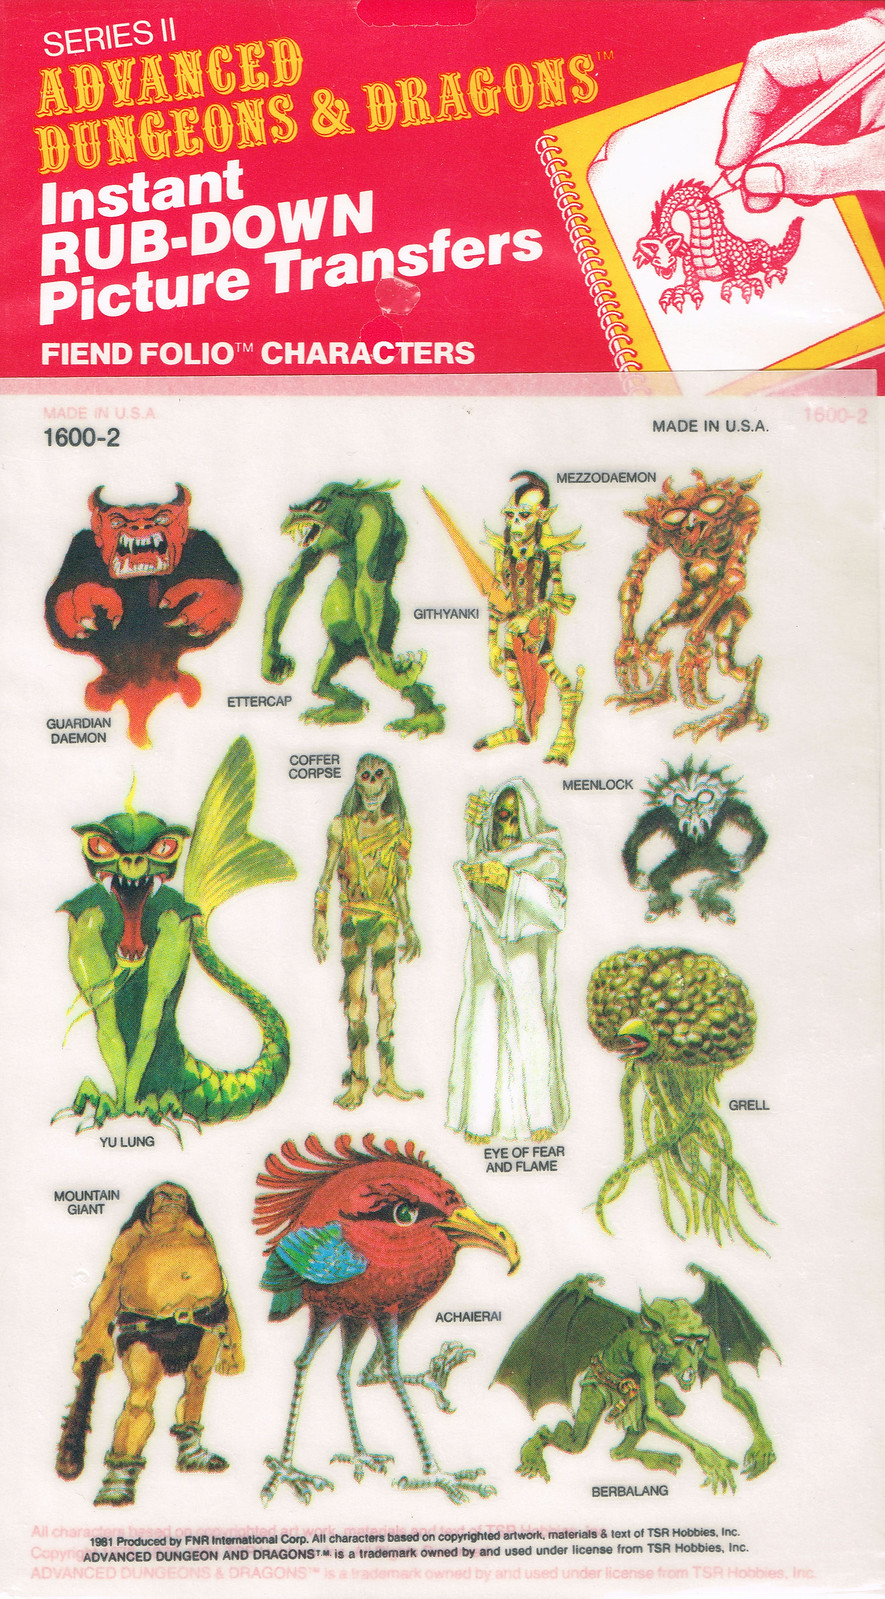 Advanced Dungeons and Dragons Picture Transfers (Fiend Folio Characters)  Series 2 - 03, 1981